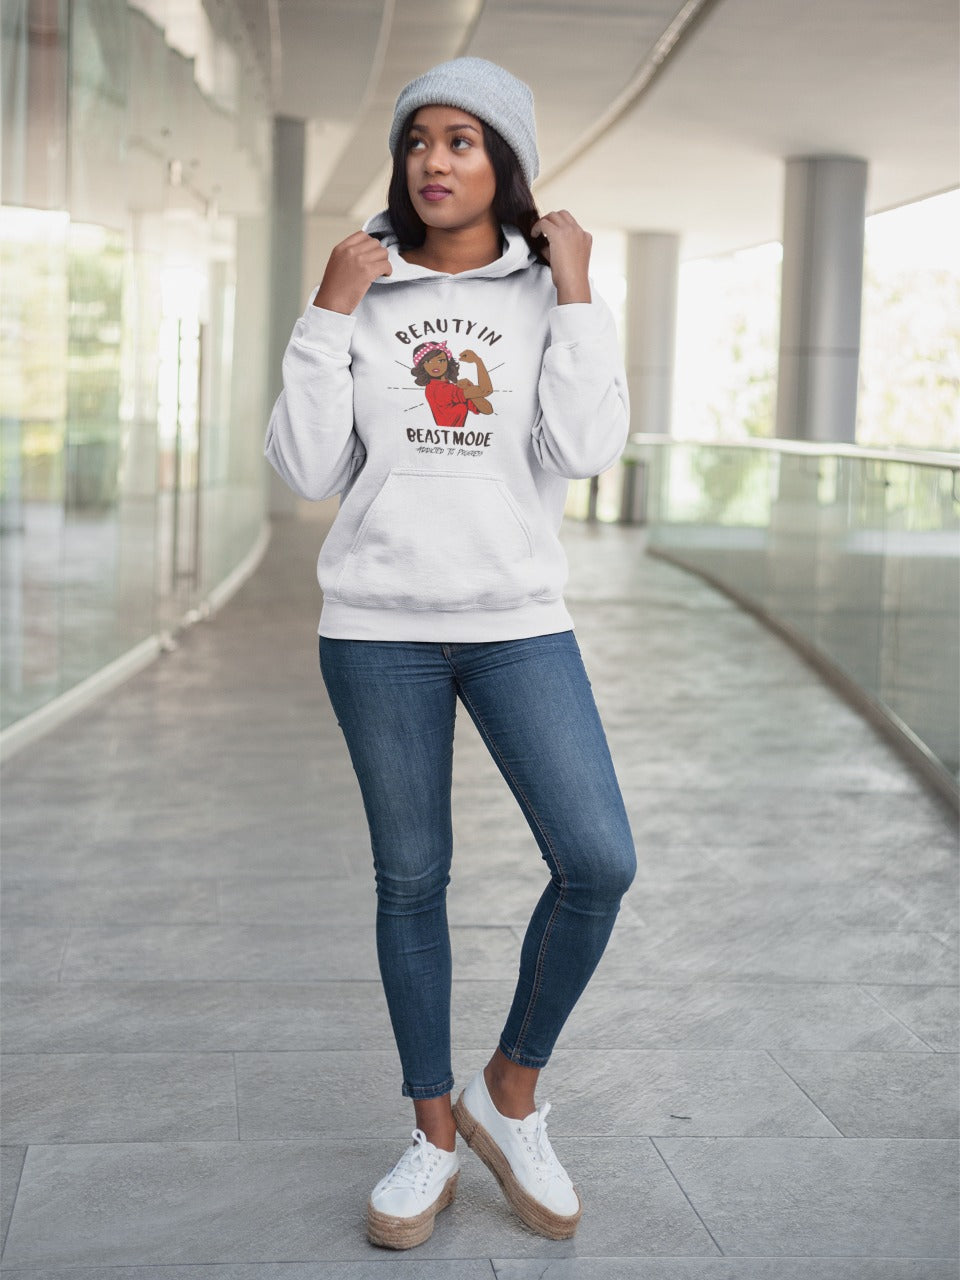 release date 3fb42 0d435 Straight Hair Beauty In Beast Mode Pullover Hoodie